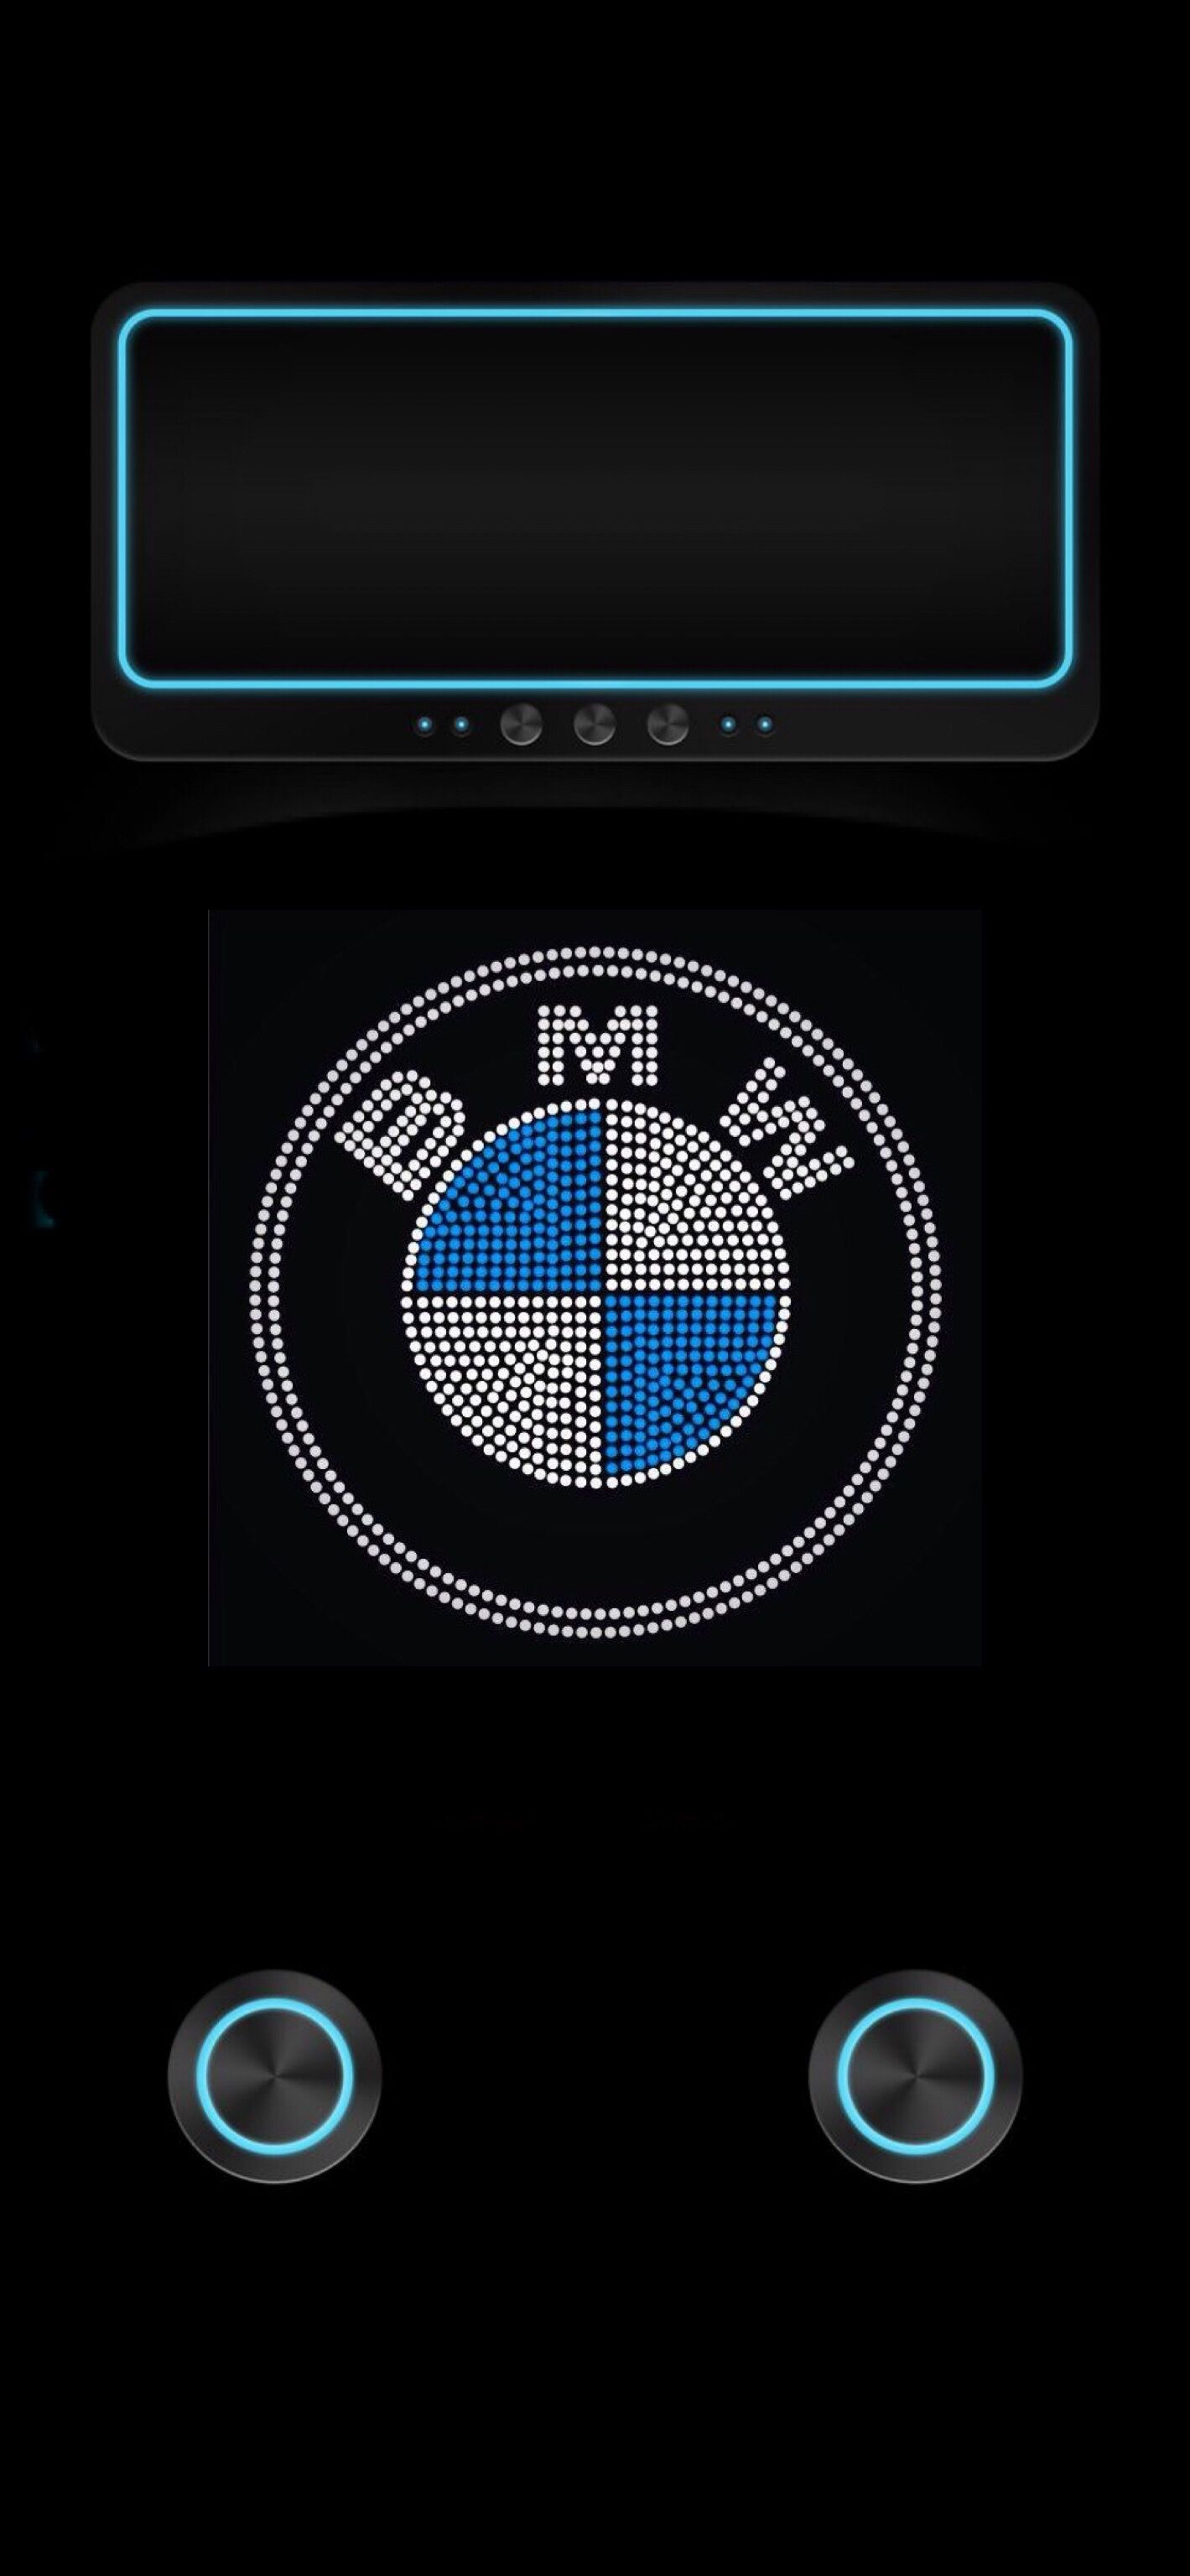 Wallpaper Iphone X Bmw Crystals Iphone X Wallpaper By Ben In